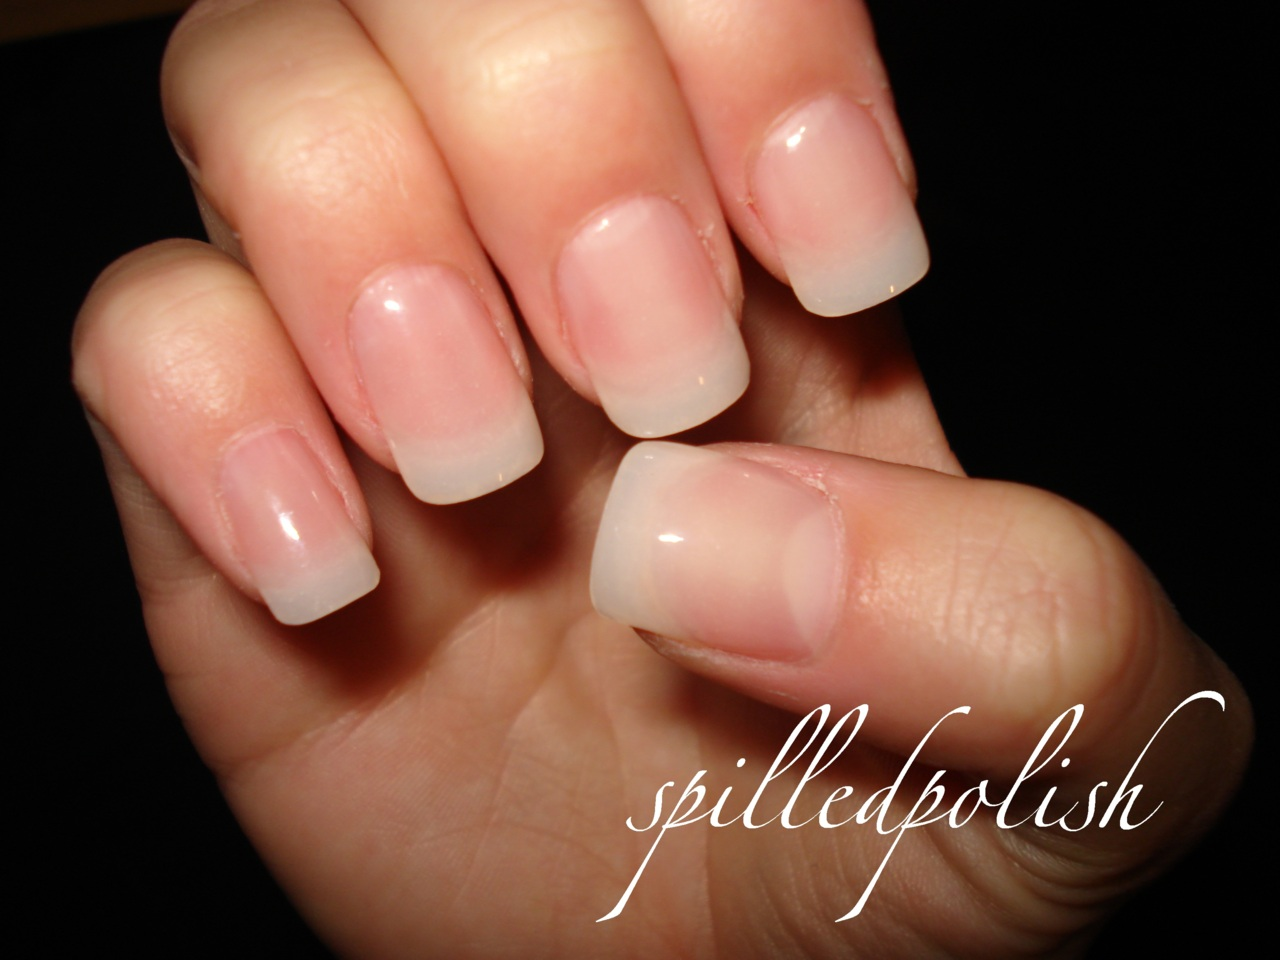 Clear gel overlay on natural nails expression nails clear gel overlay on natural nails photo 1 solutioingenieria Image collections